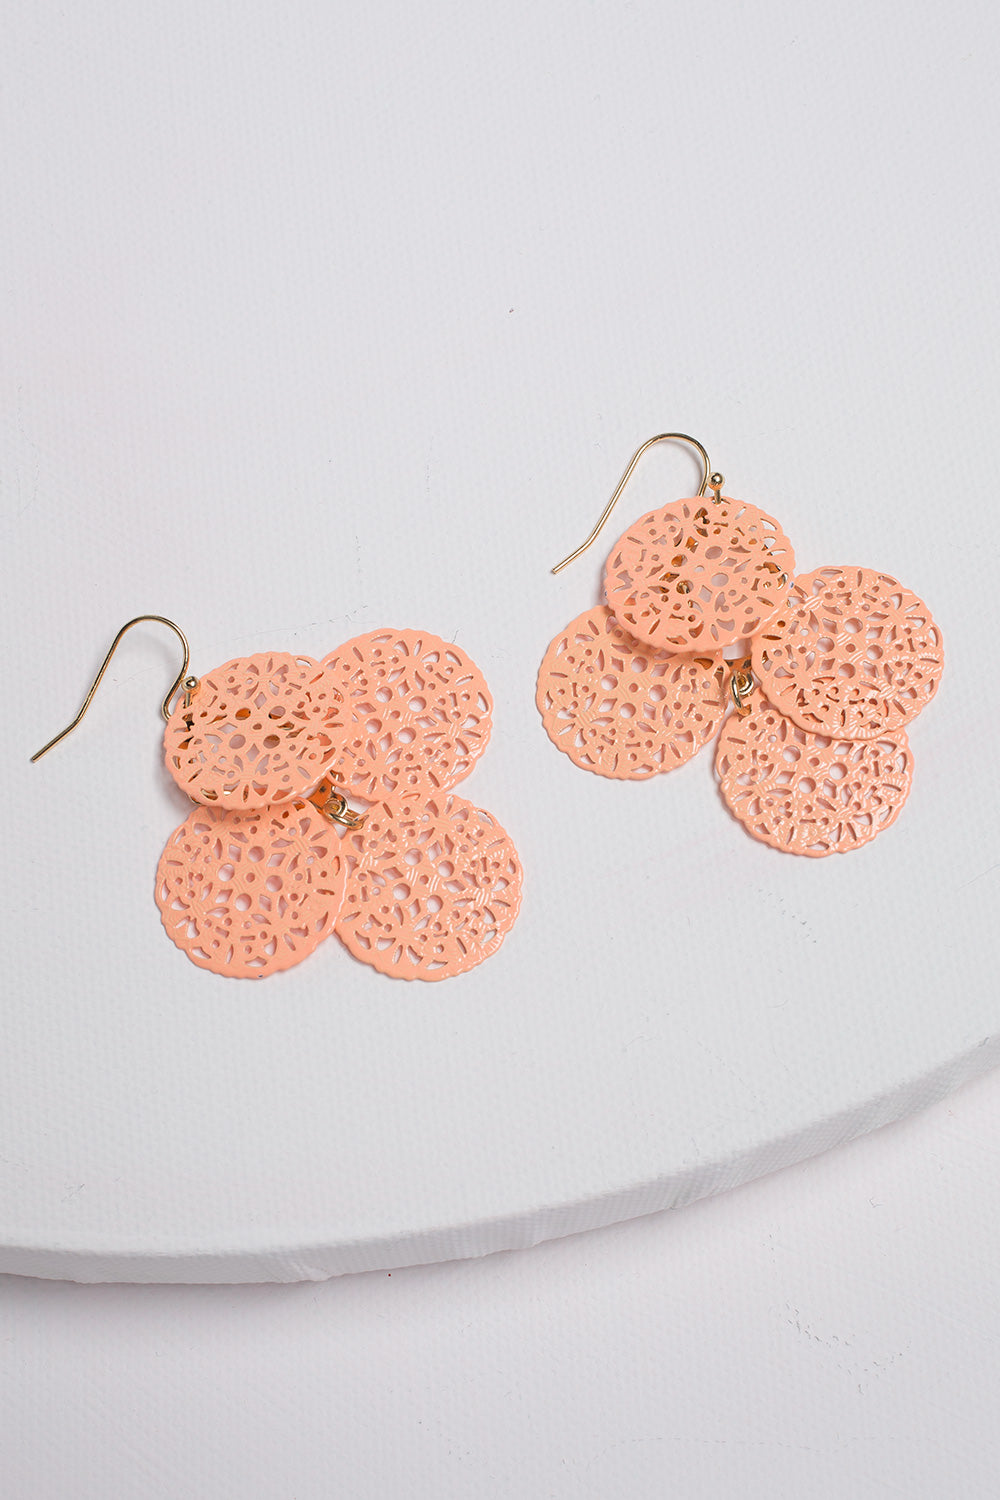 Type 1 Peach Basket Earrings